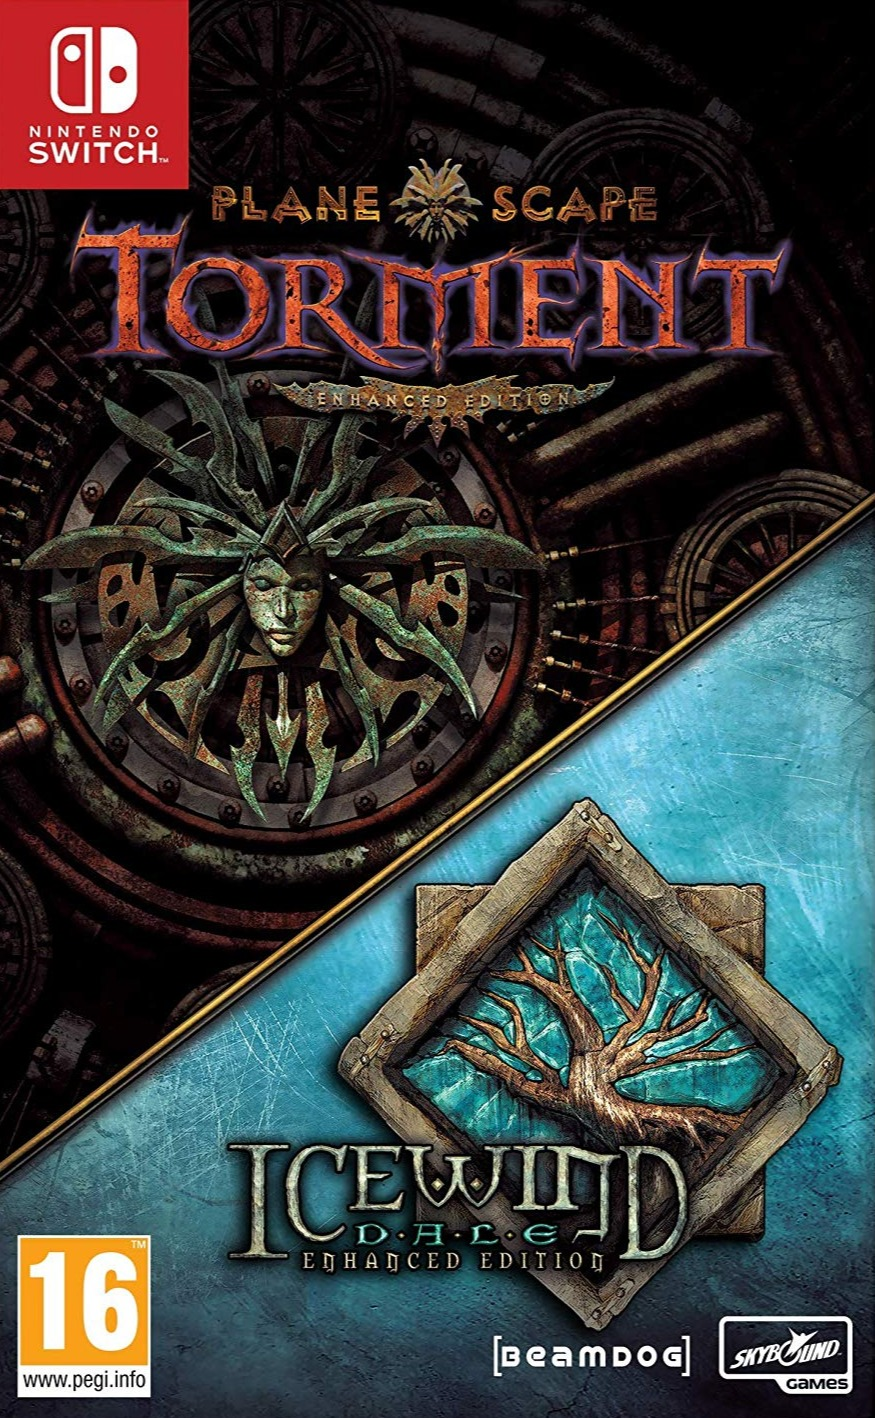 Planescape: Torment & Icewind Dale Enhanced Edition (SWITCH)